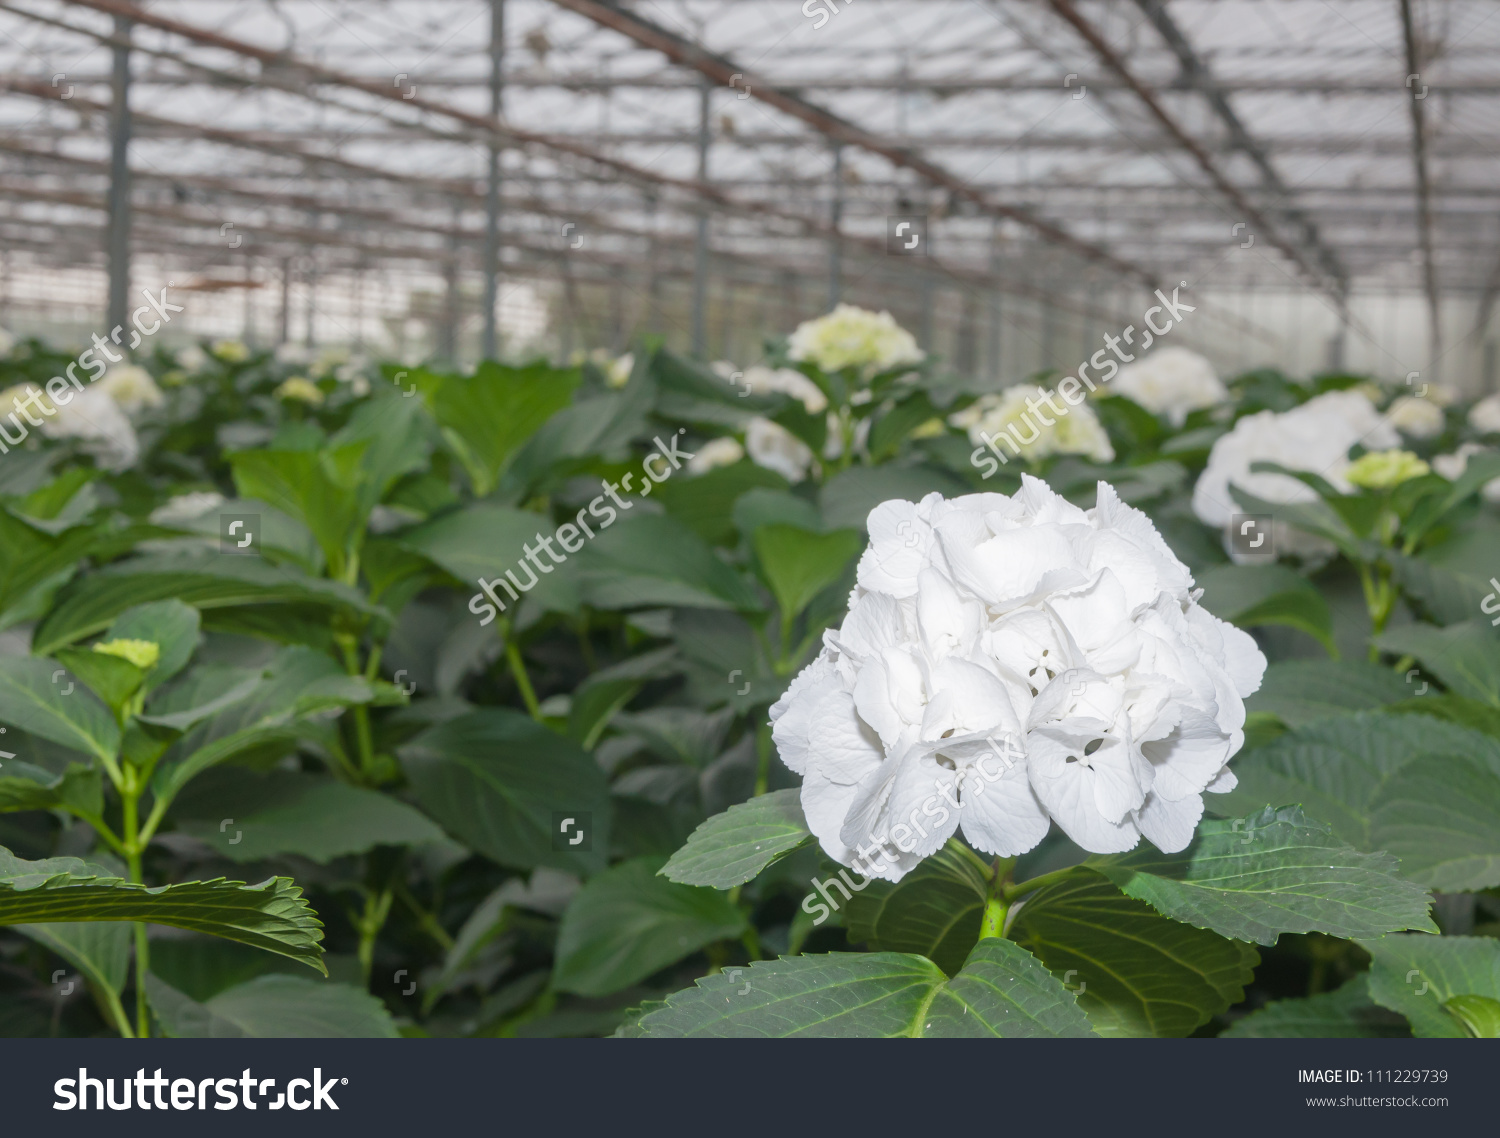 Pure White Blooming Hydrangea Macrophylla Plants In A Flower.